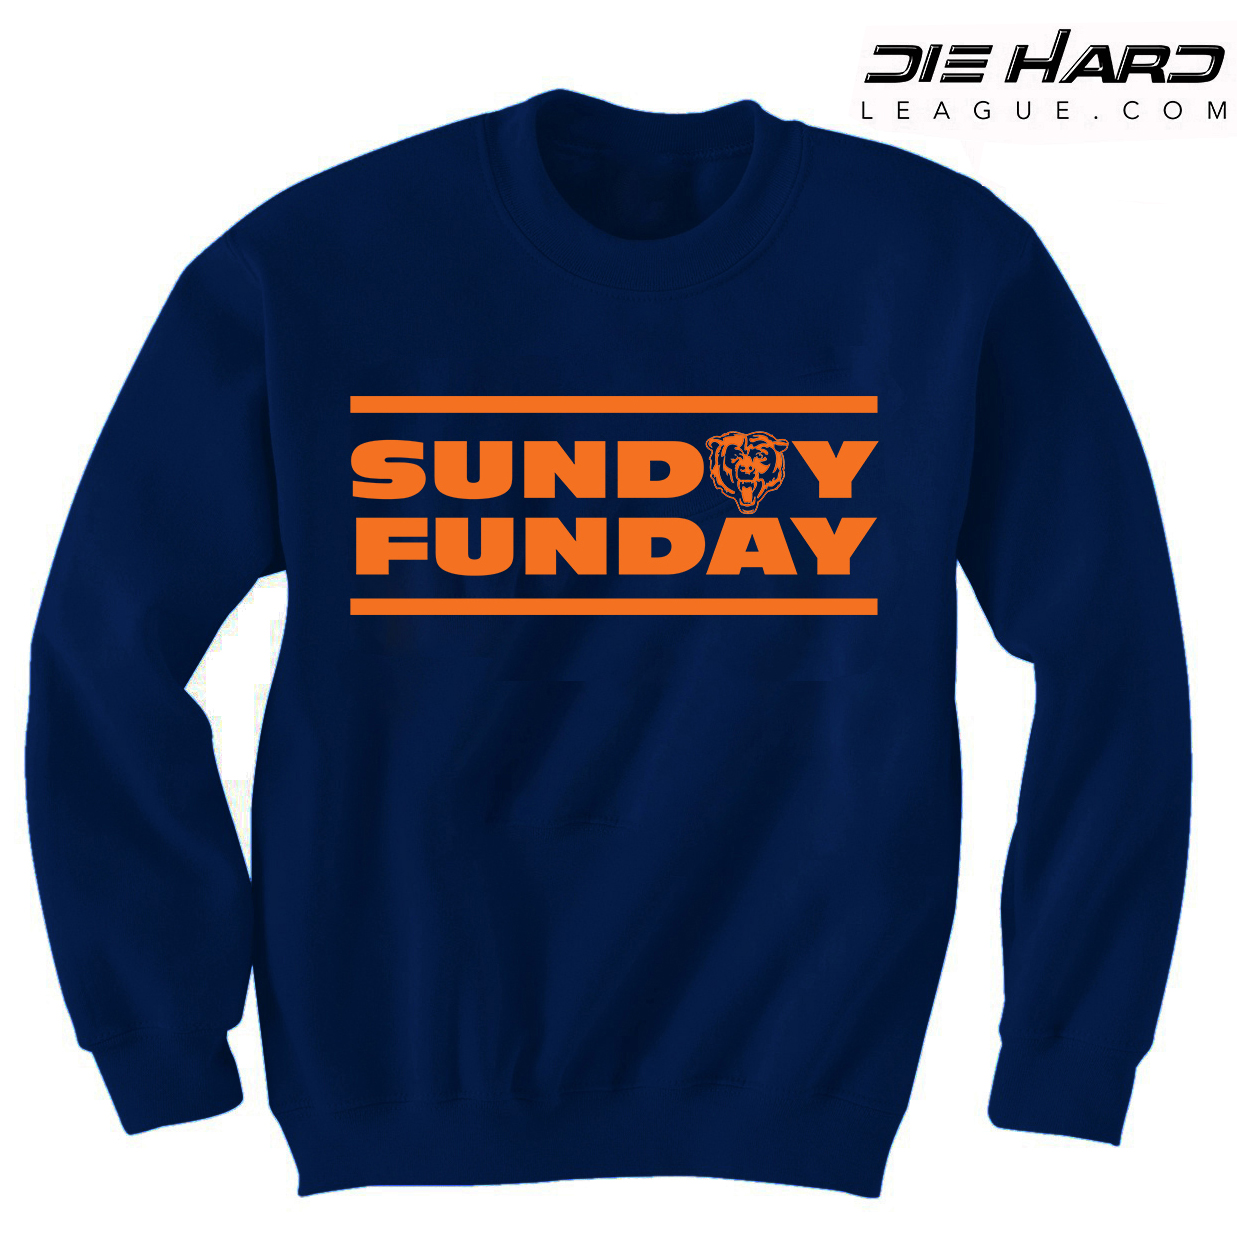 Chicago Bears Store - Sunday Funday Navy Sweatshirt  Best Deal  207746757